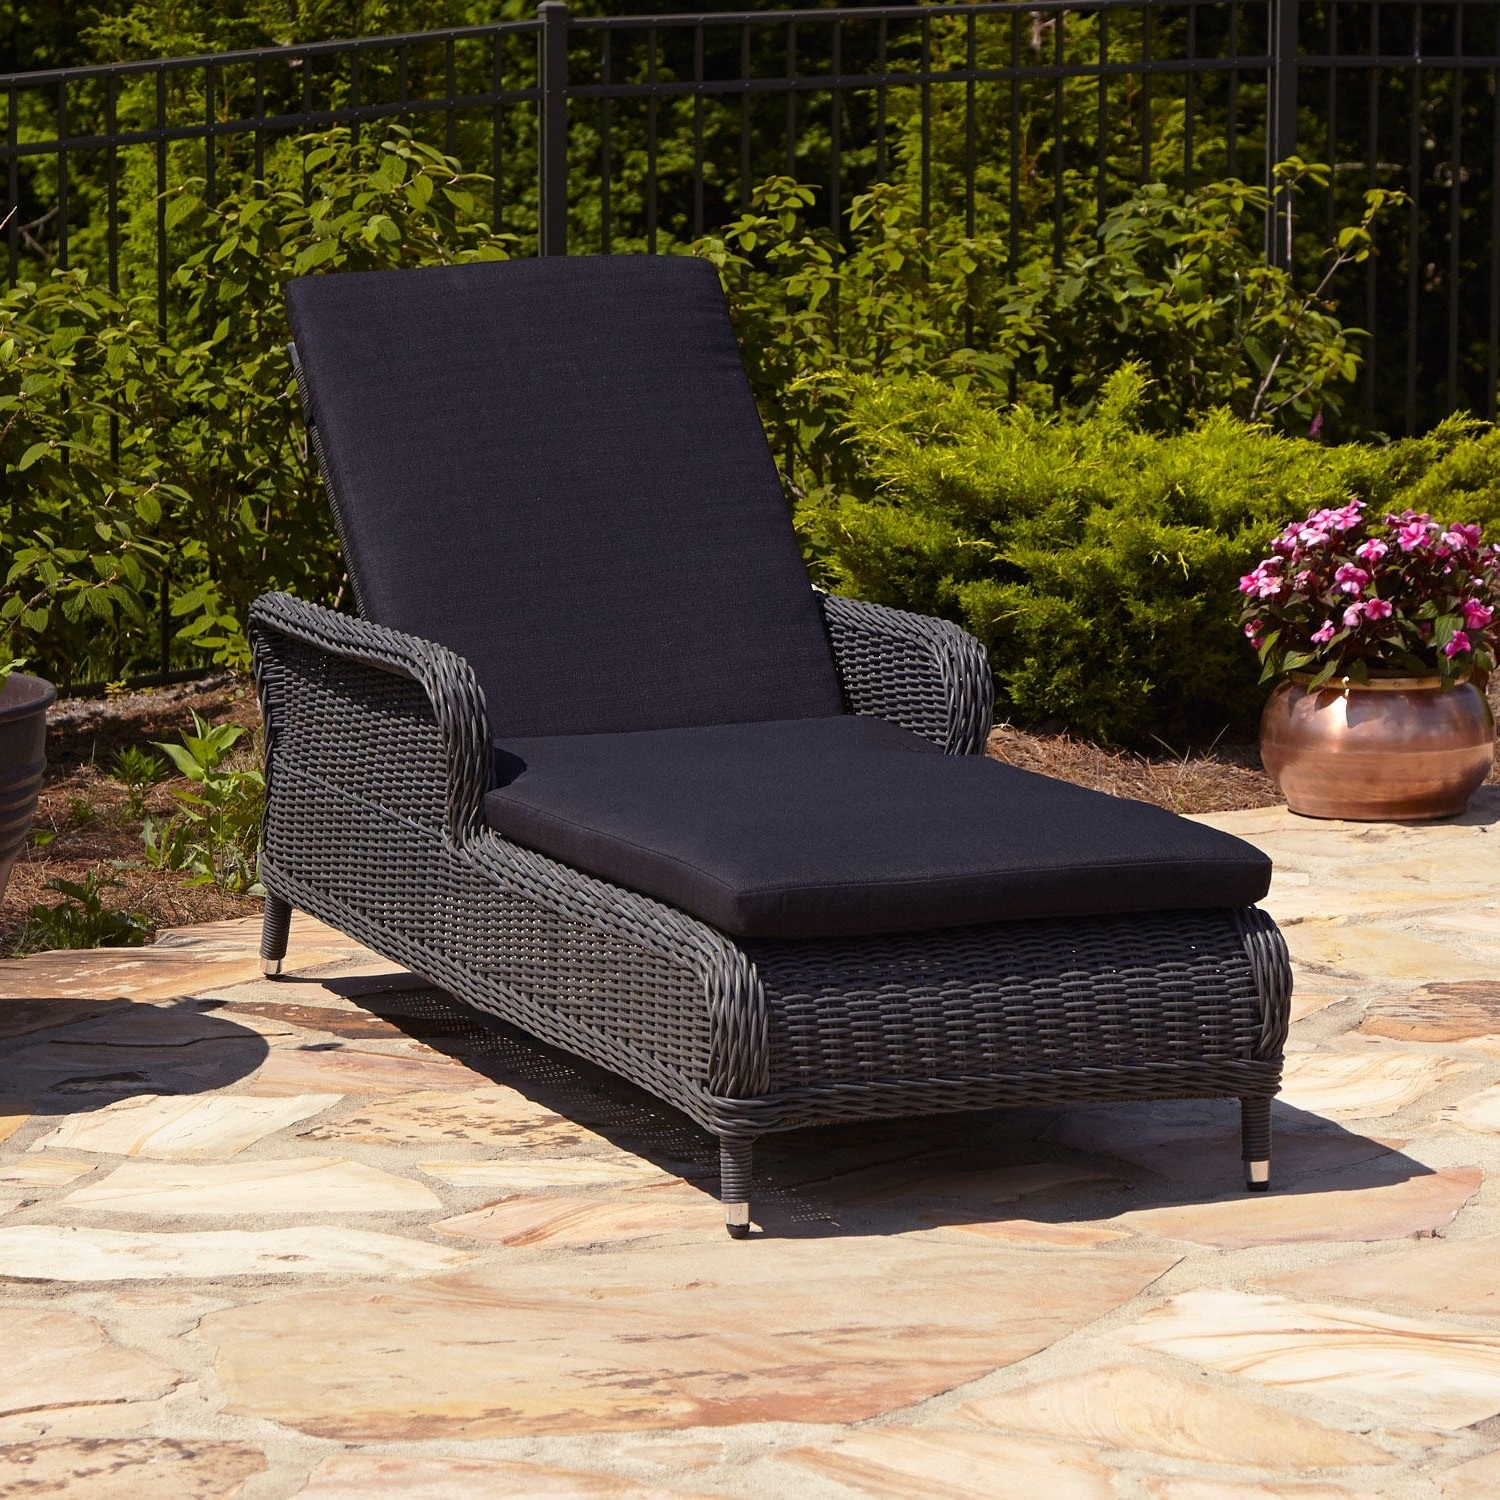 Current Remarkable Wicker Chaise Lounge Chair Gray Patio Furniture All Pertaining To Chaise Lounge Chairs With Cushions (View 10 of 15)